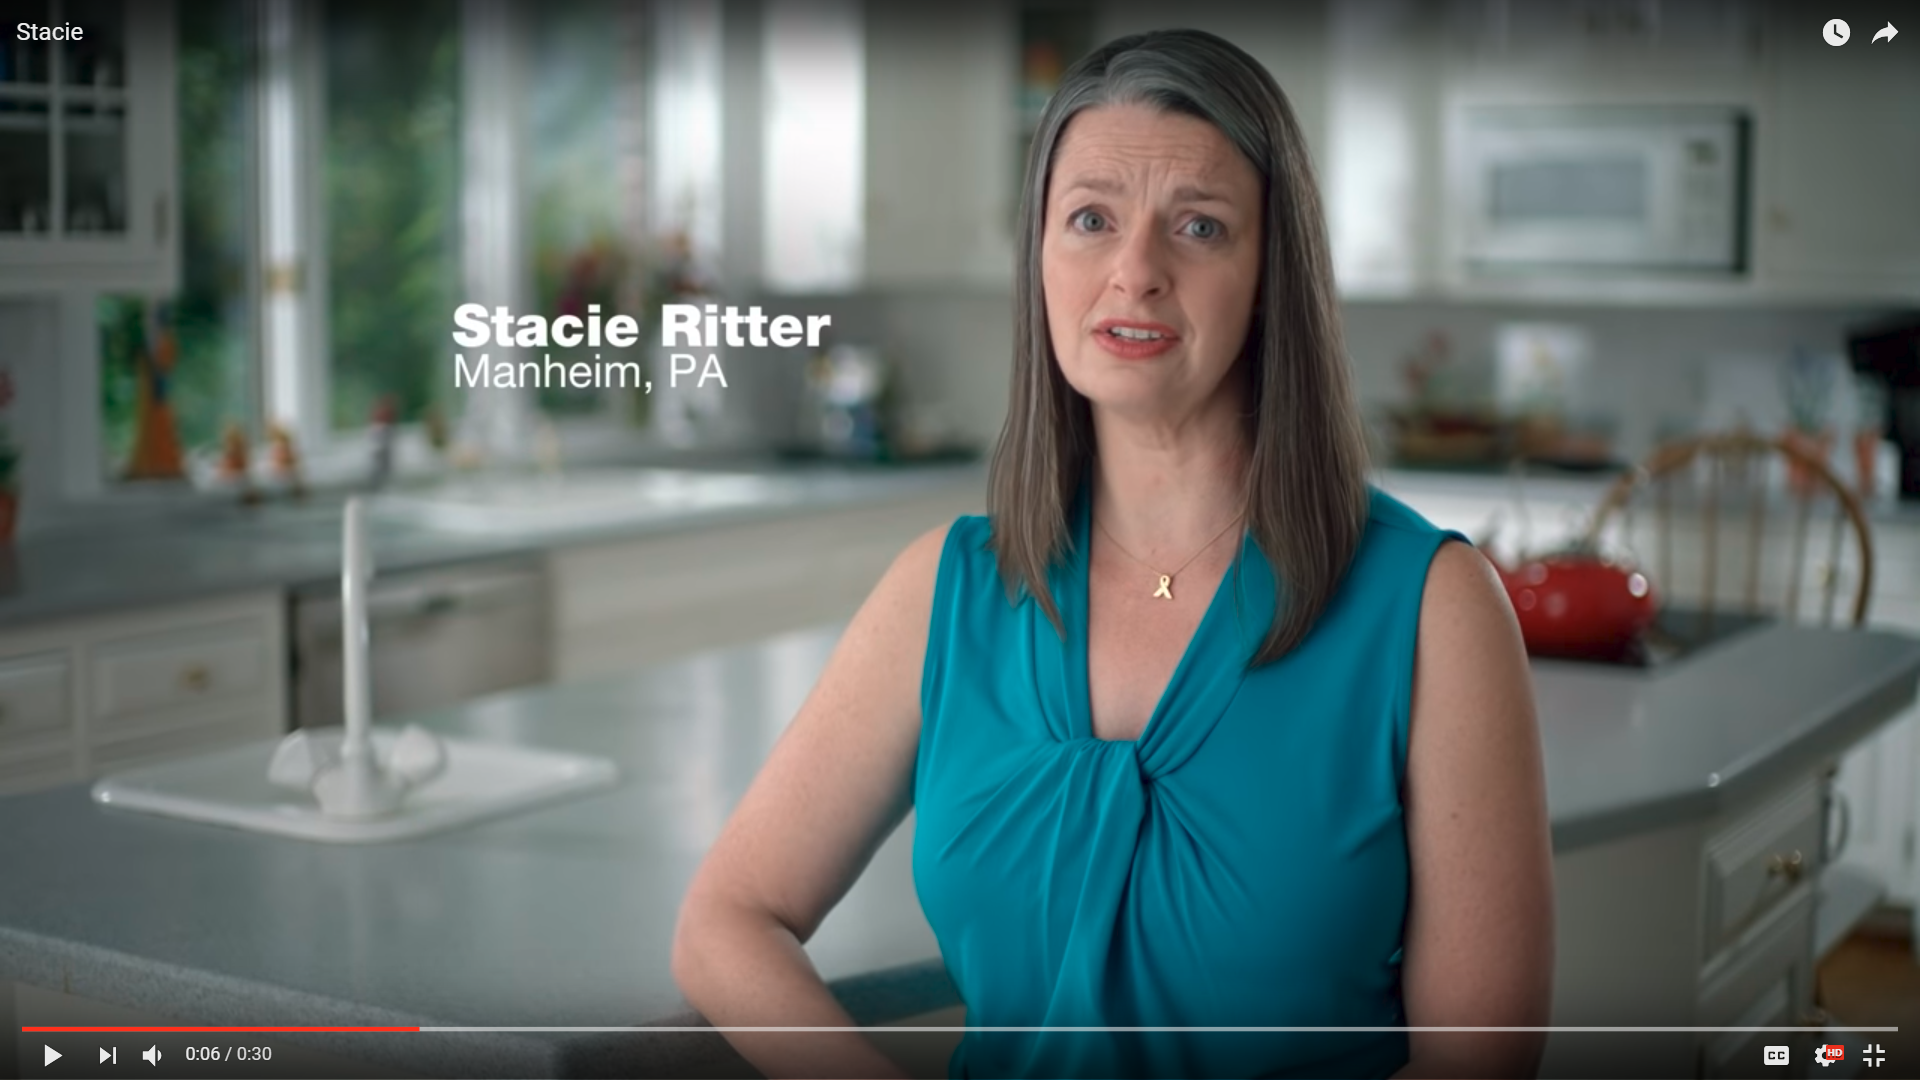 In this ad from the campaign of U.S. Sen. Bob Casey, mother Stacie Ritter speaks about her daughters.